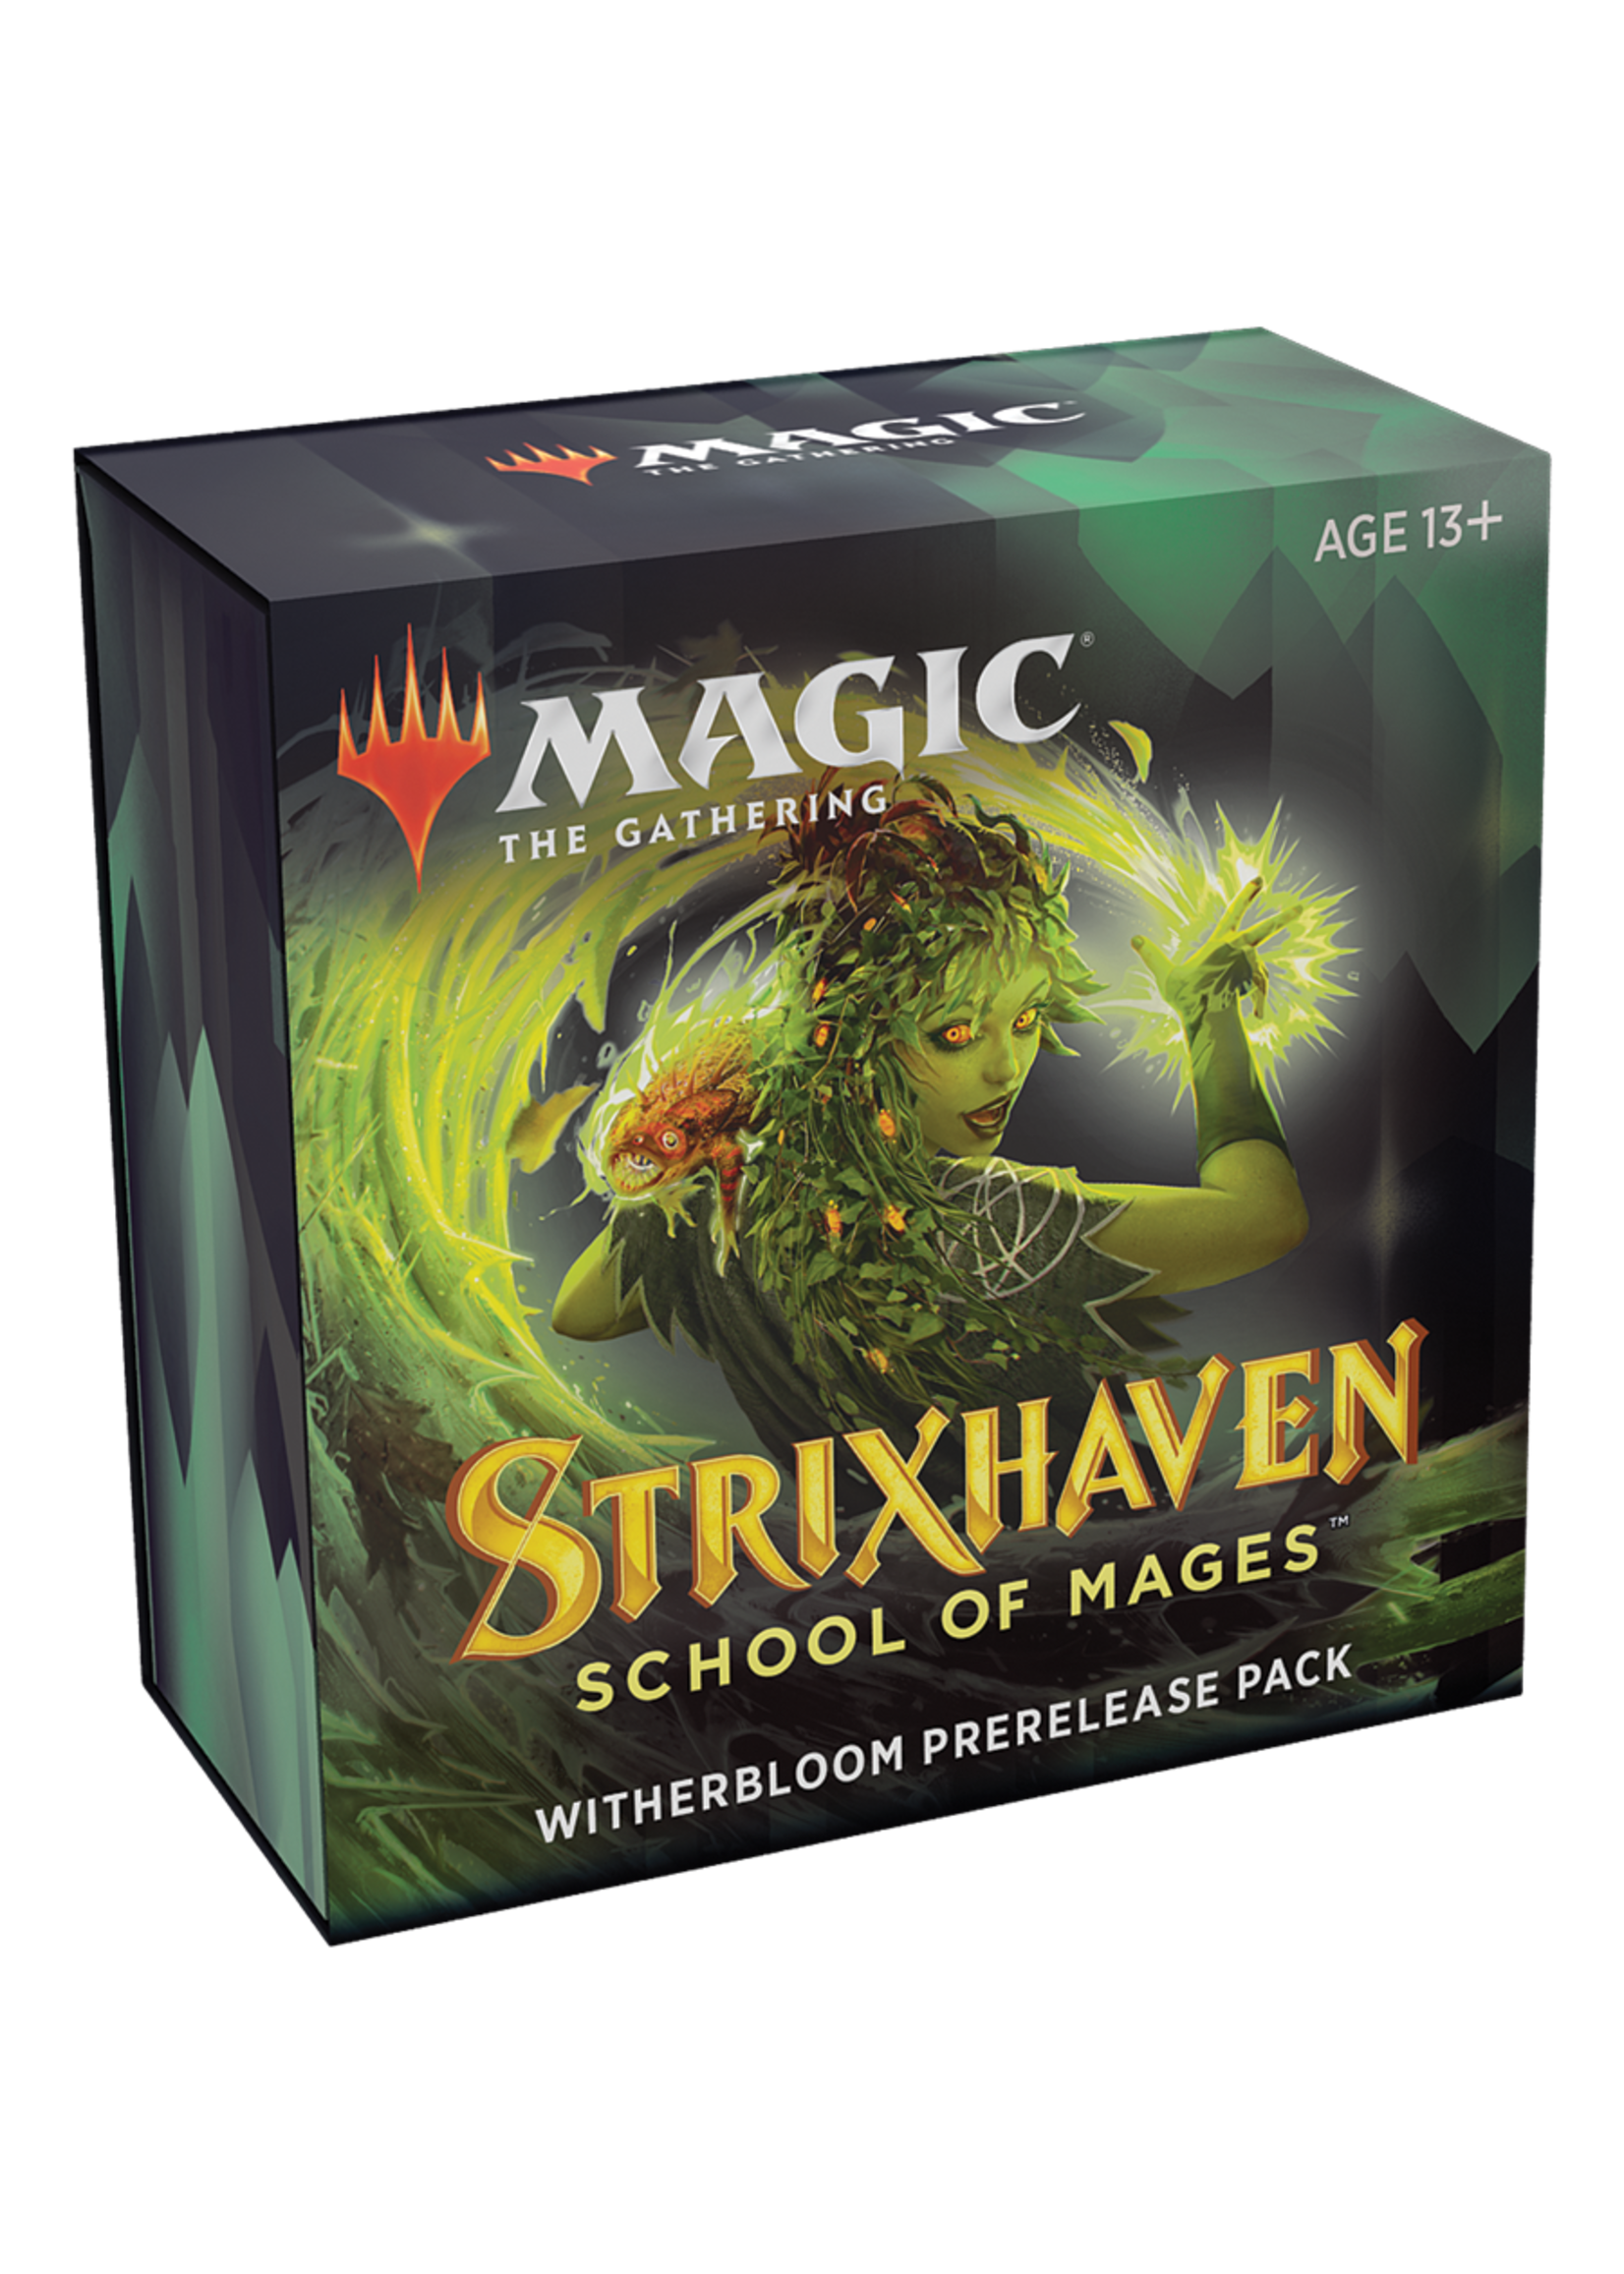 Magic: The Gathering Strixhaven: School of Mages - Prerelease Pack